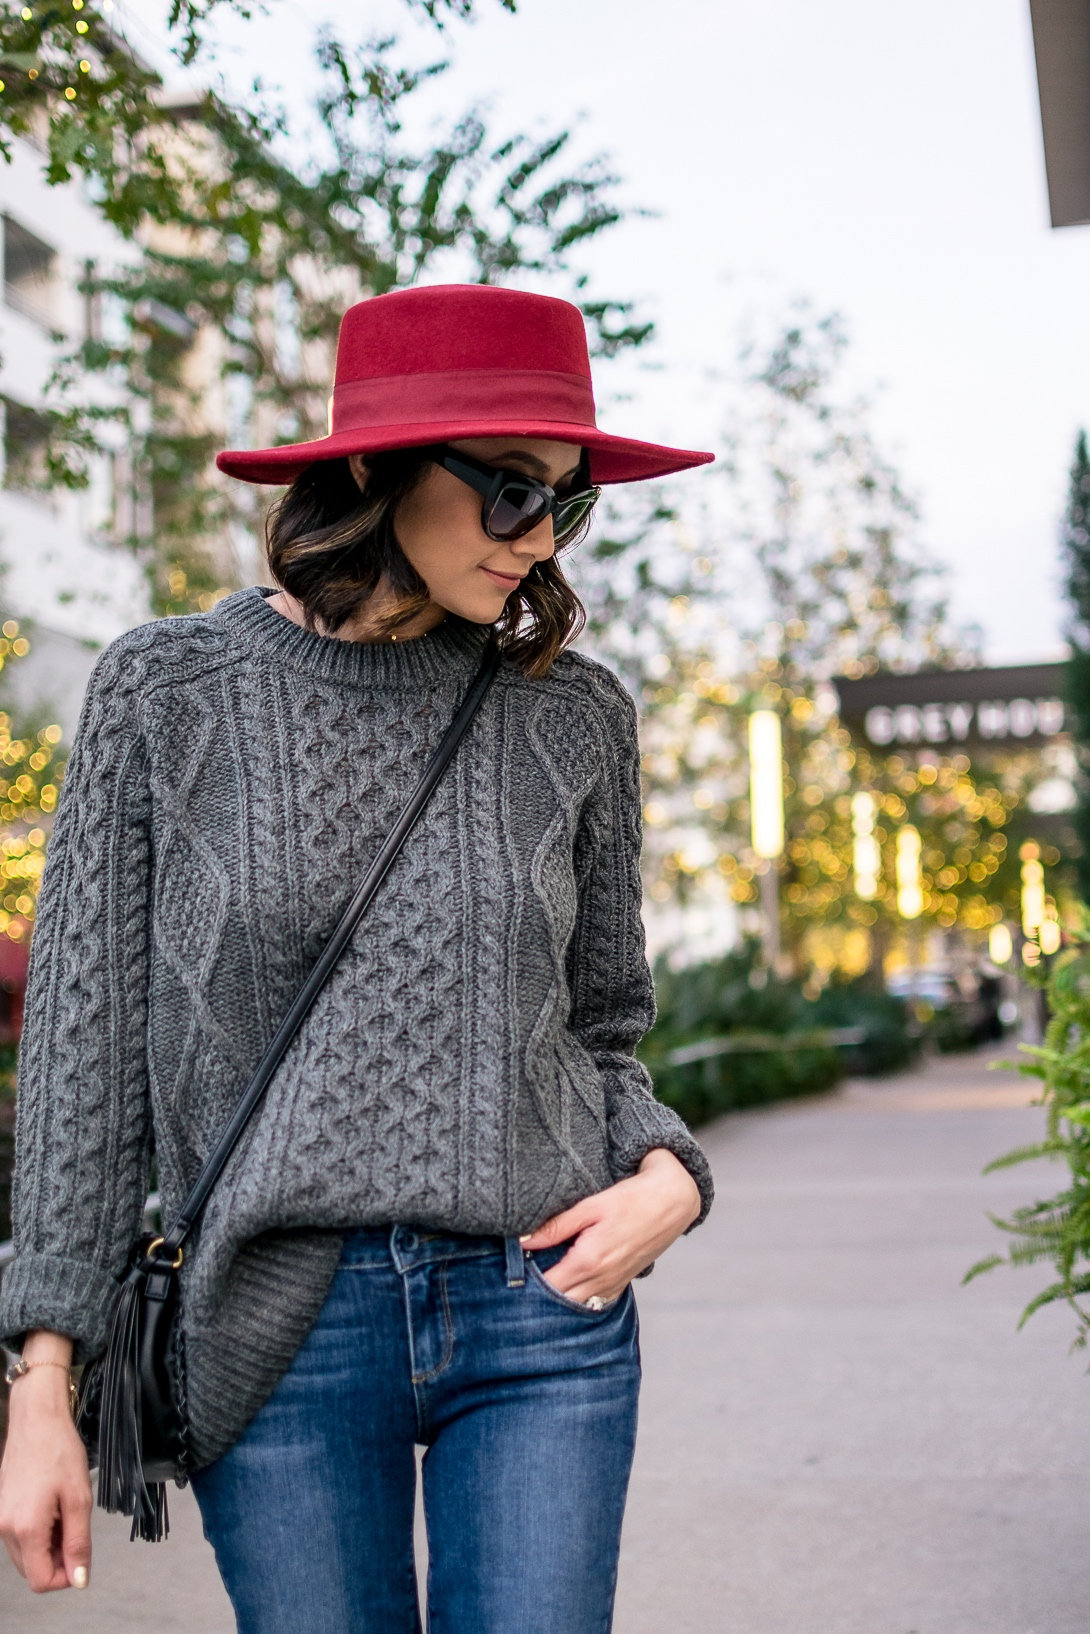 Daily Craving wearing a red hat with a grey cable knit sweater